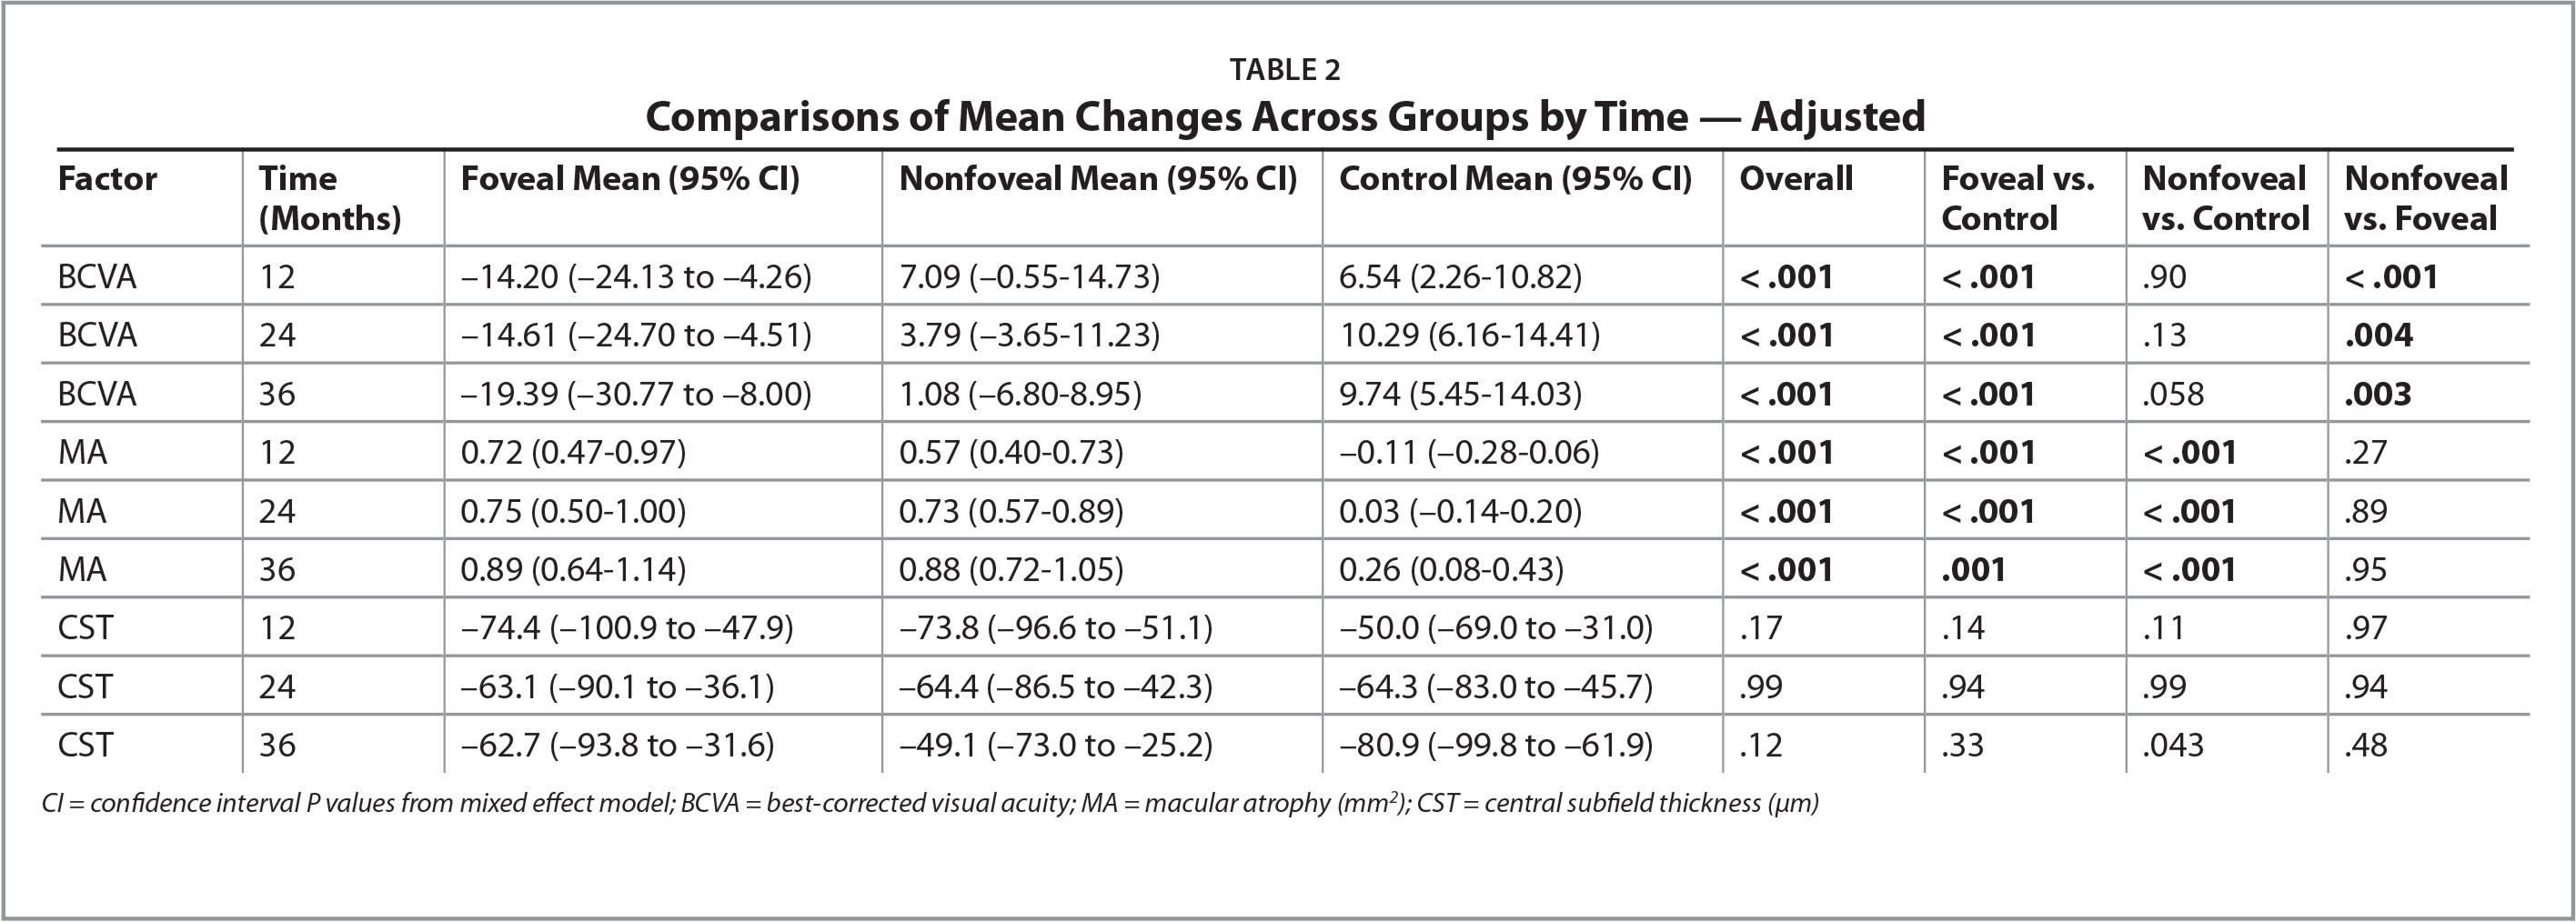 Comparisons of Mean Changes Across Groups by Time — Adjusted